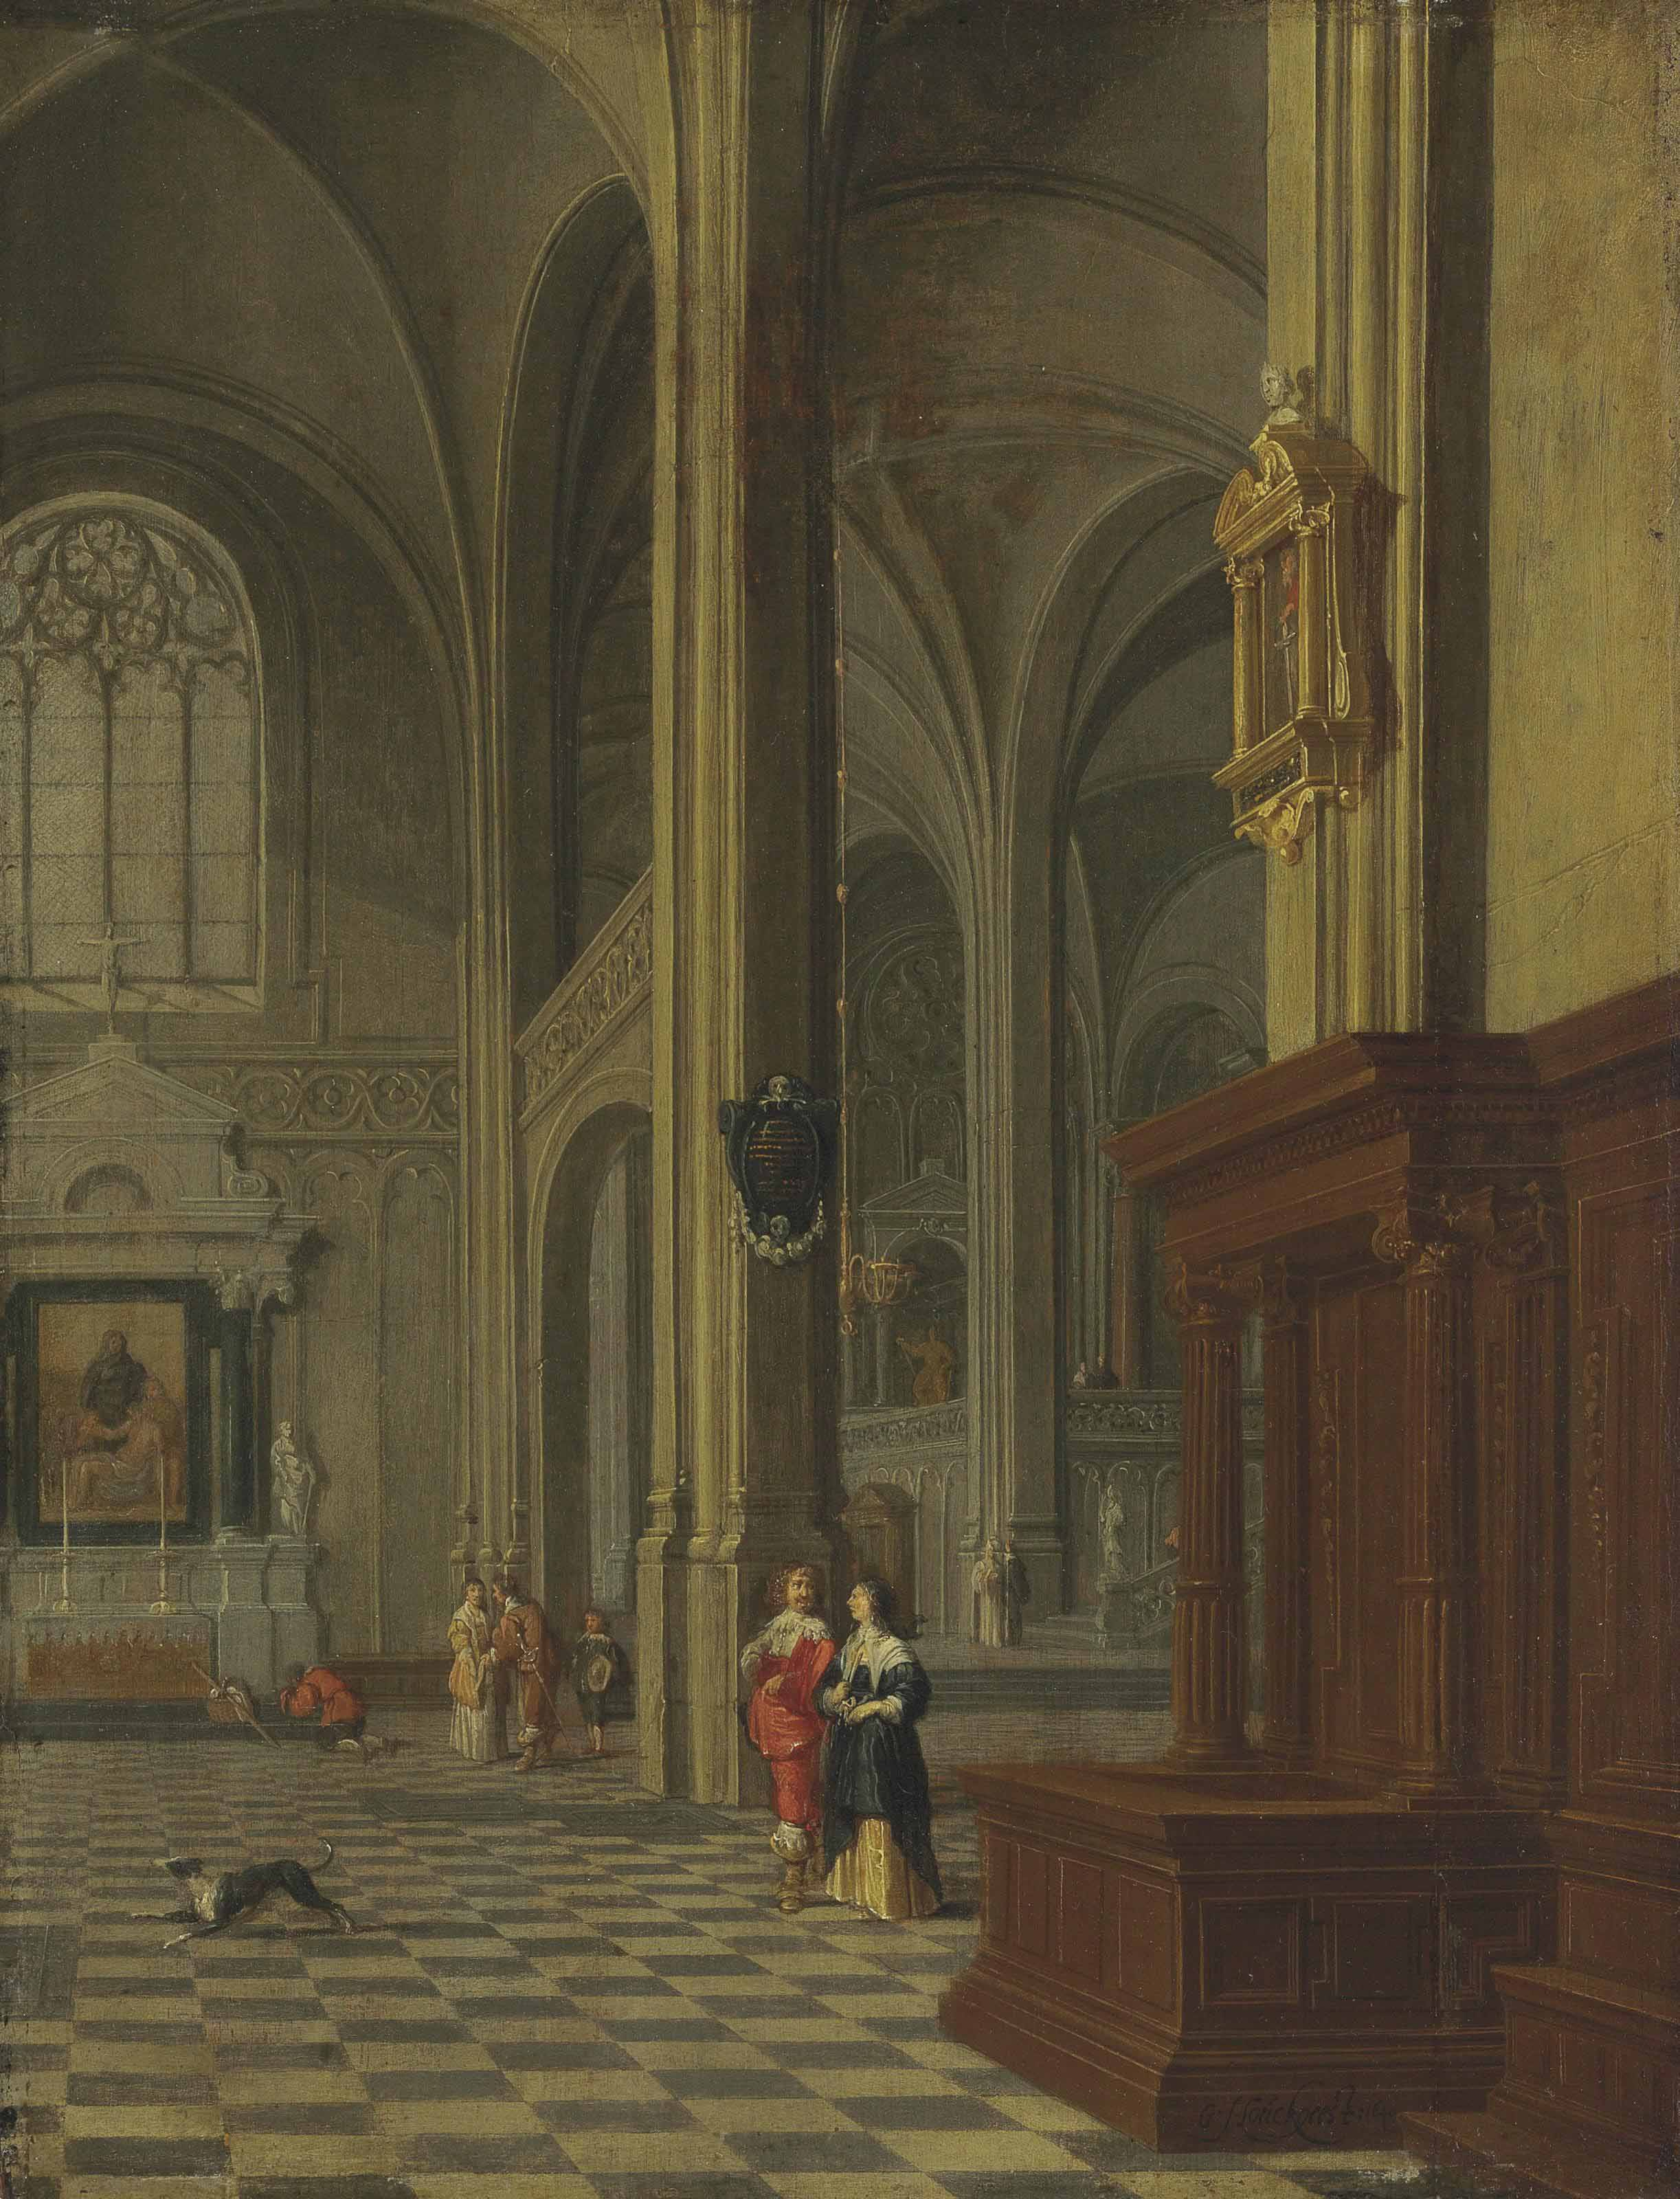 A gothic church interior with elegant figures